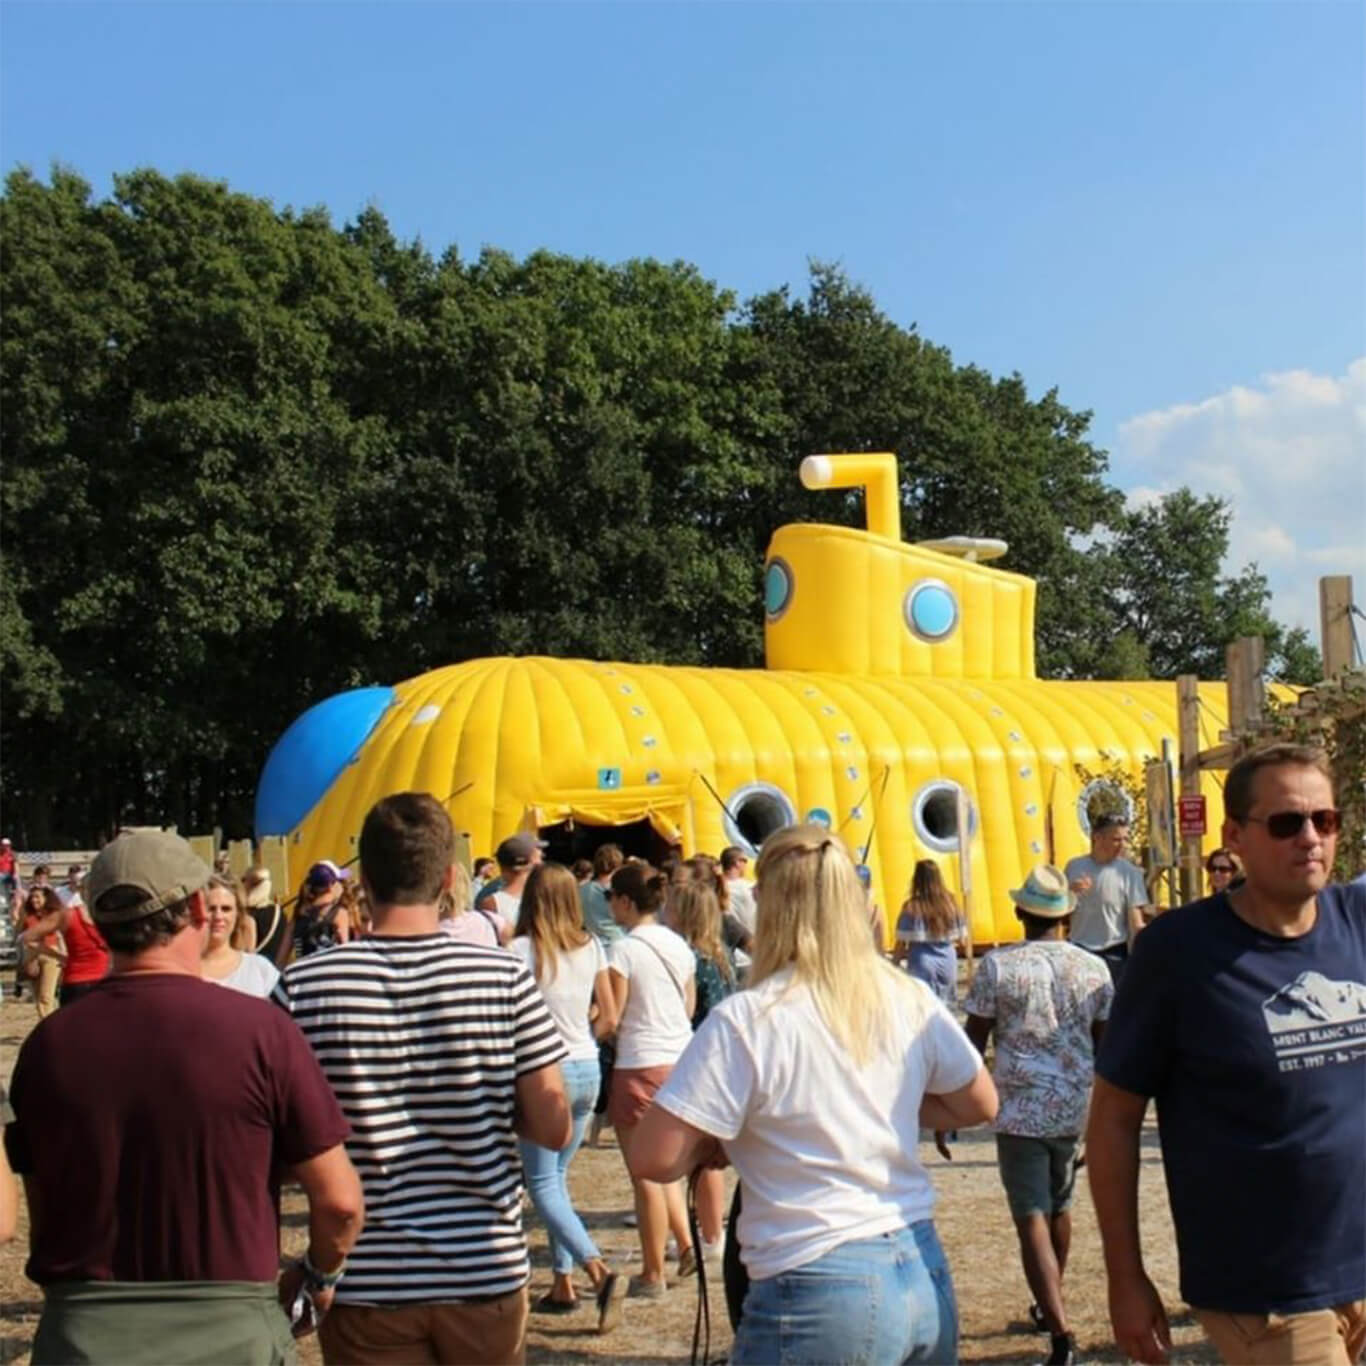 boerenfeest Congres yellow submarine